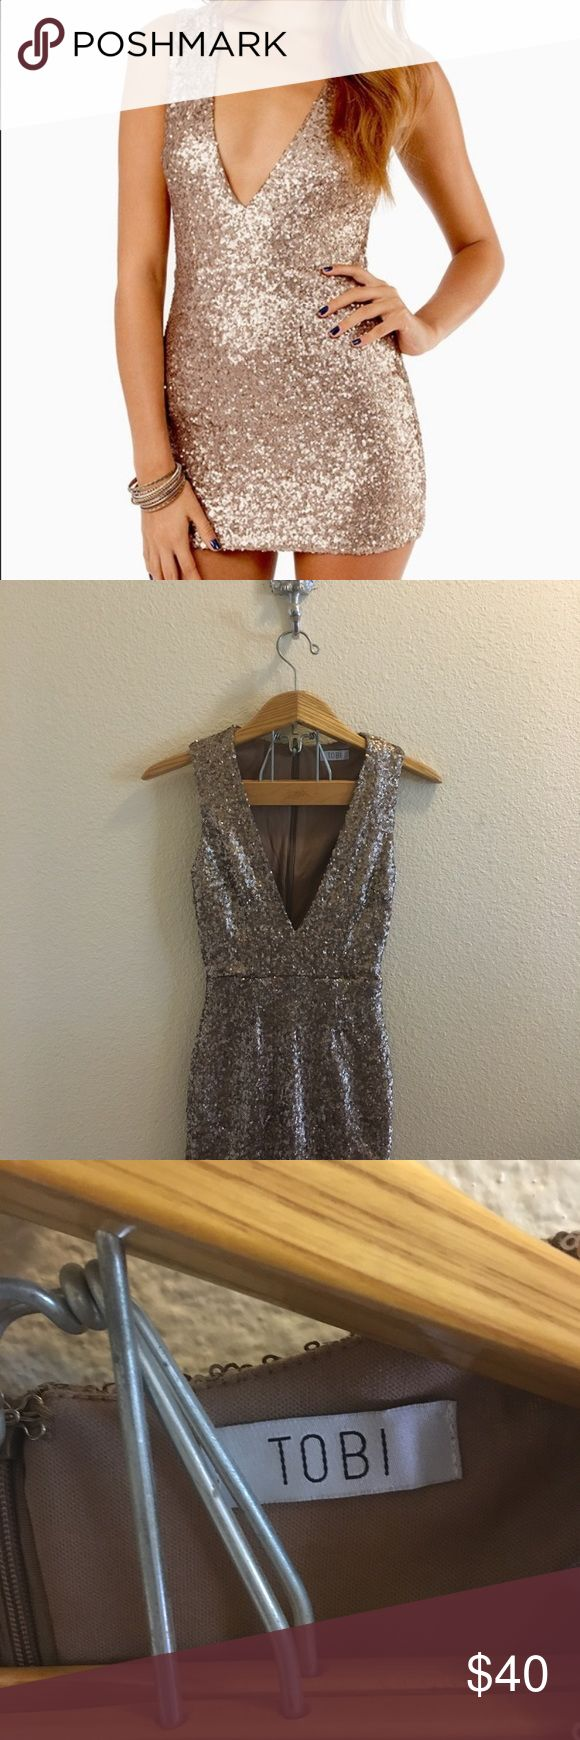 Tobi Gold Sequined Dress Size XS gold sequined clubbing dress by Tobi. NWOT, no flaws or signs of wear. Zips up the back. Form fitting with deep v-shaped neckline.  I ship daily - excluding Sundays and holidays - and I store items in a pet free, smoke free environment. Open to offers; bundles discounted! Tobi Dresses Mini